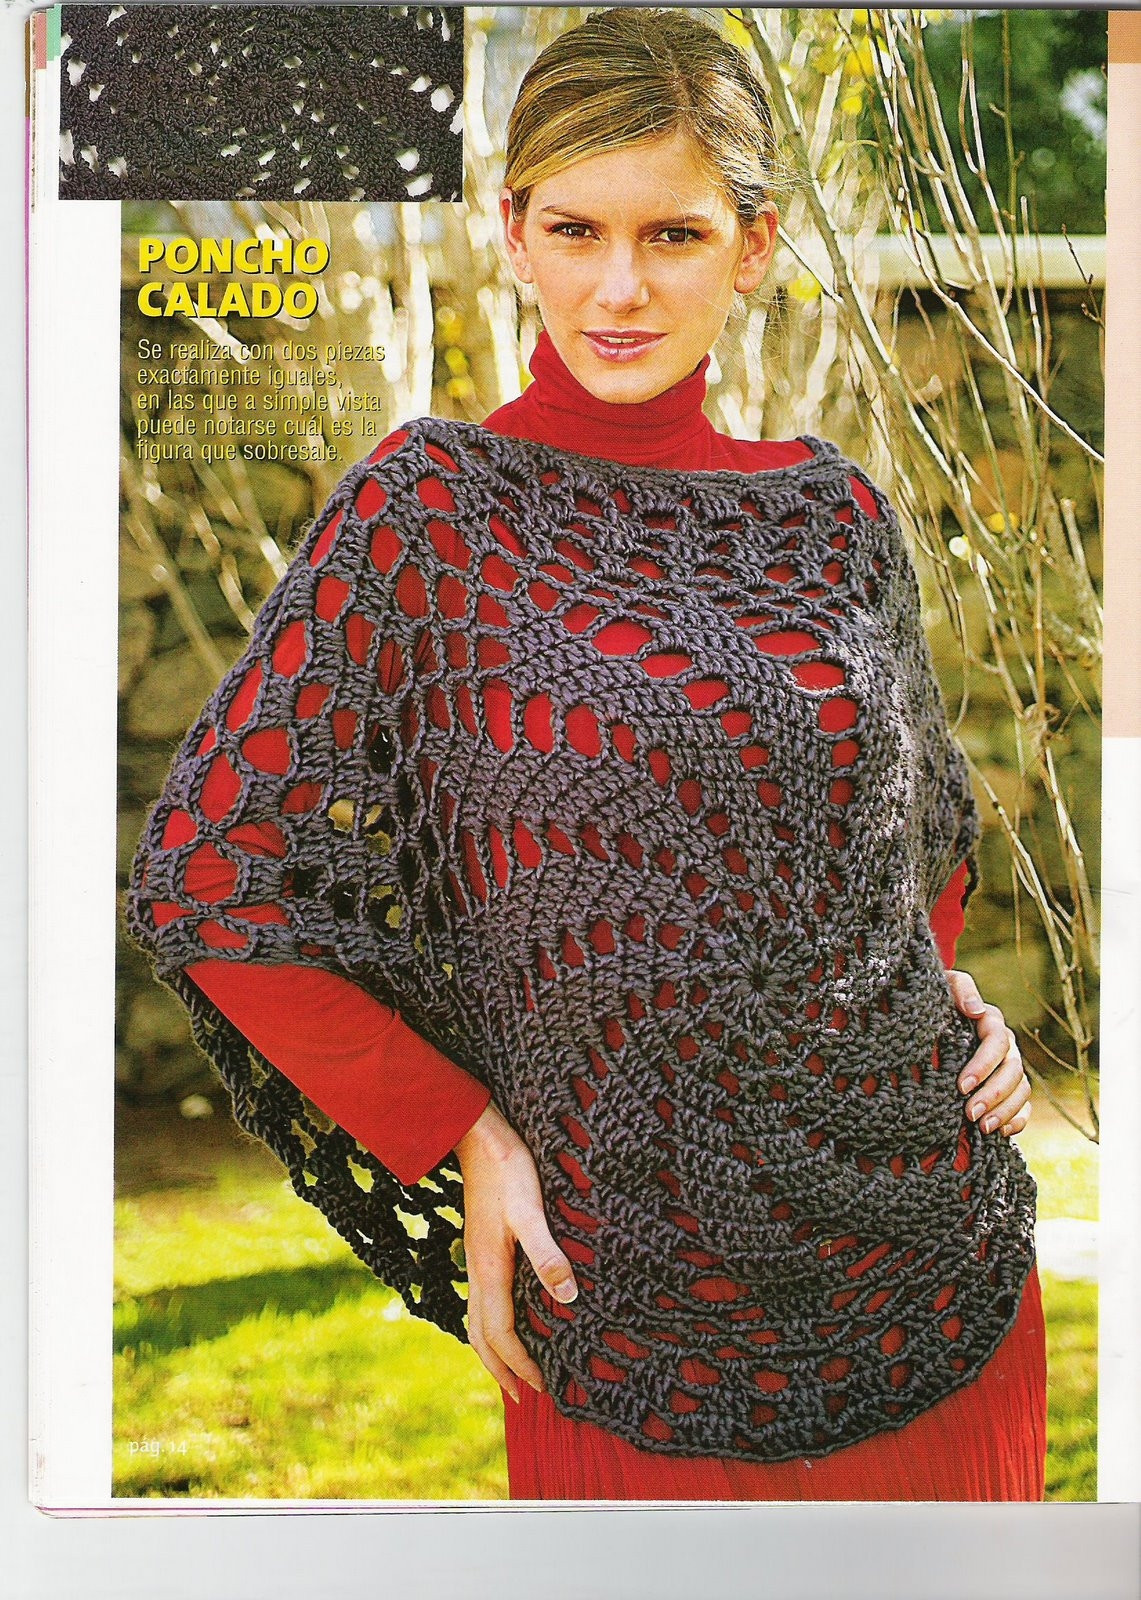 Ponchos A Crochet Best Of Poncho A Crochet Patrones Imagui Of Fresh 46 Photos Ponchos A Crochet